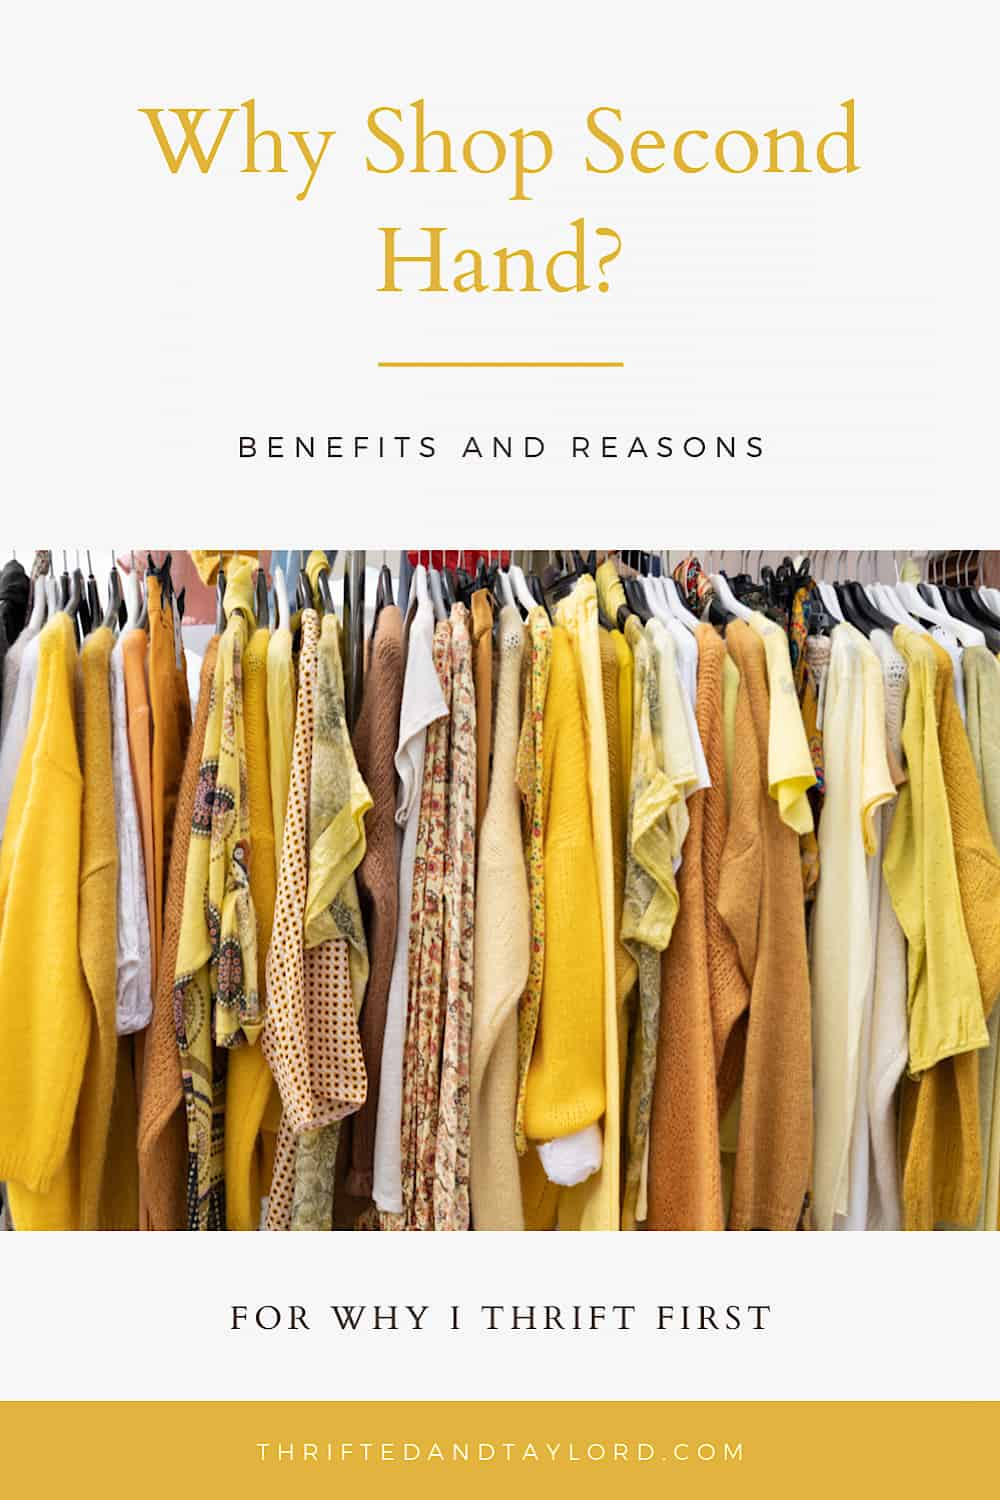 Photo is a clothing rack full of women's clothes in different styles and shades of yellow.